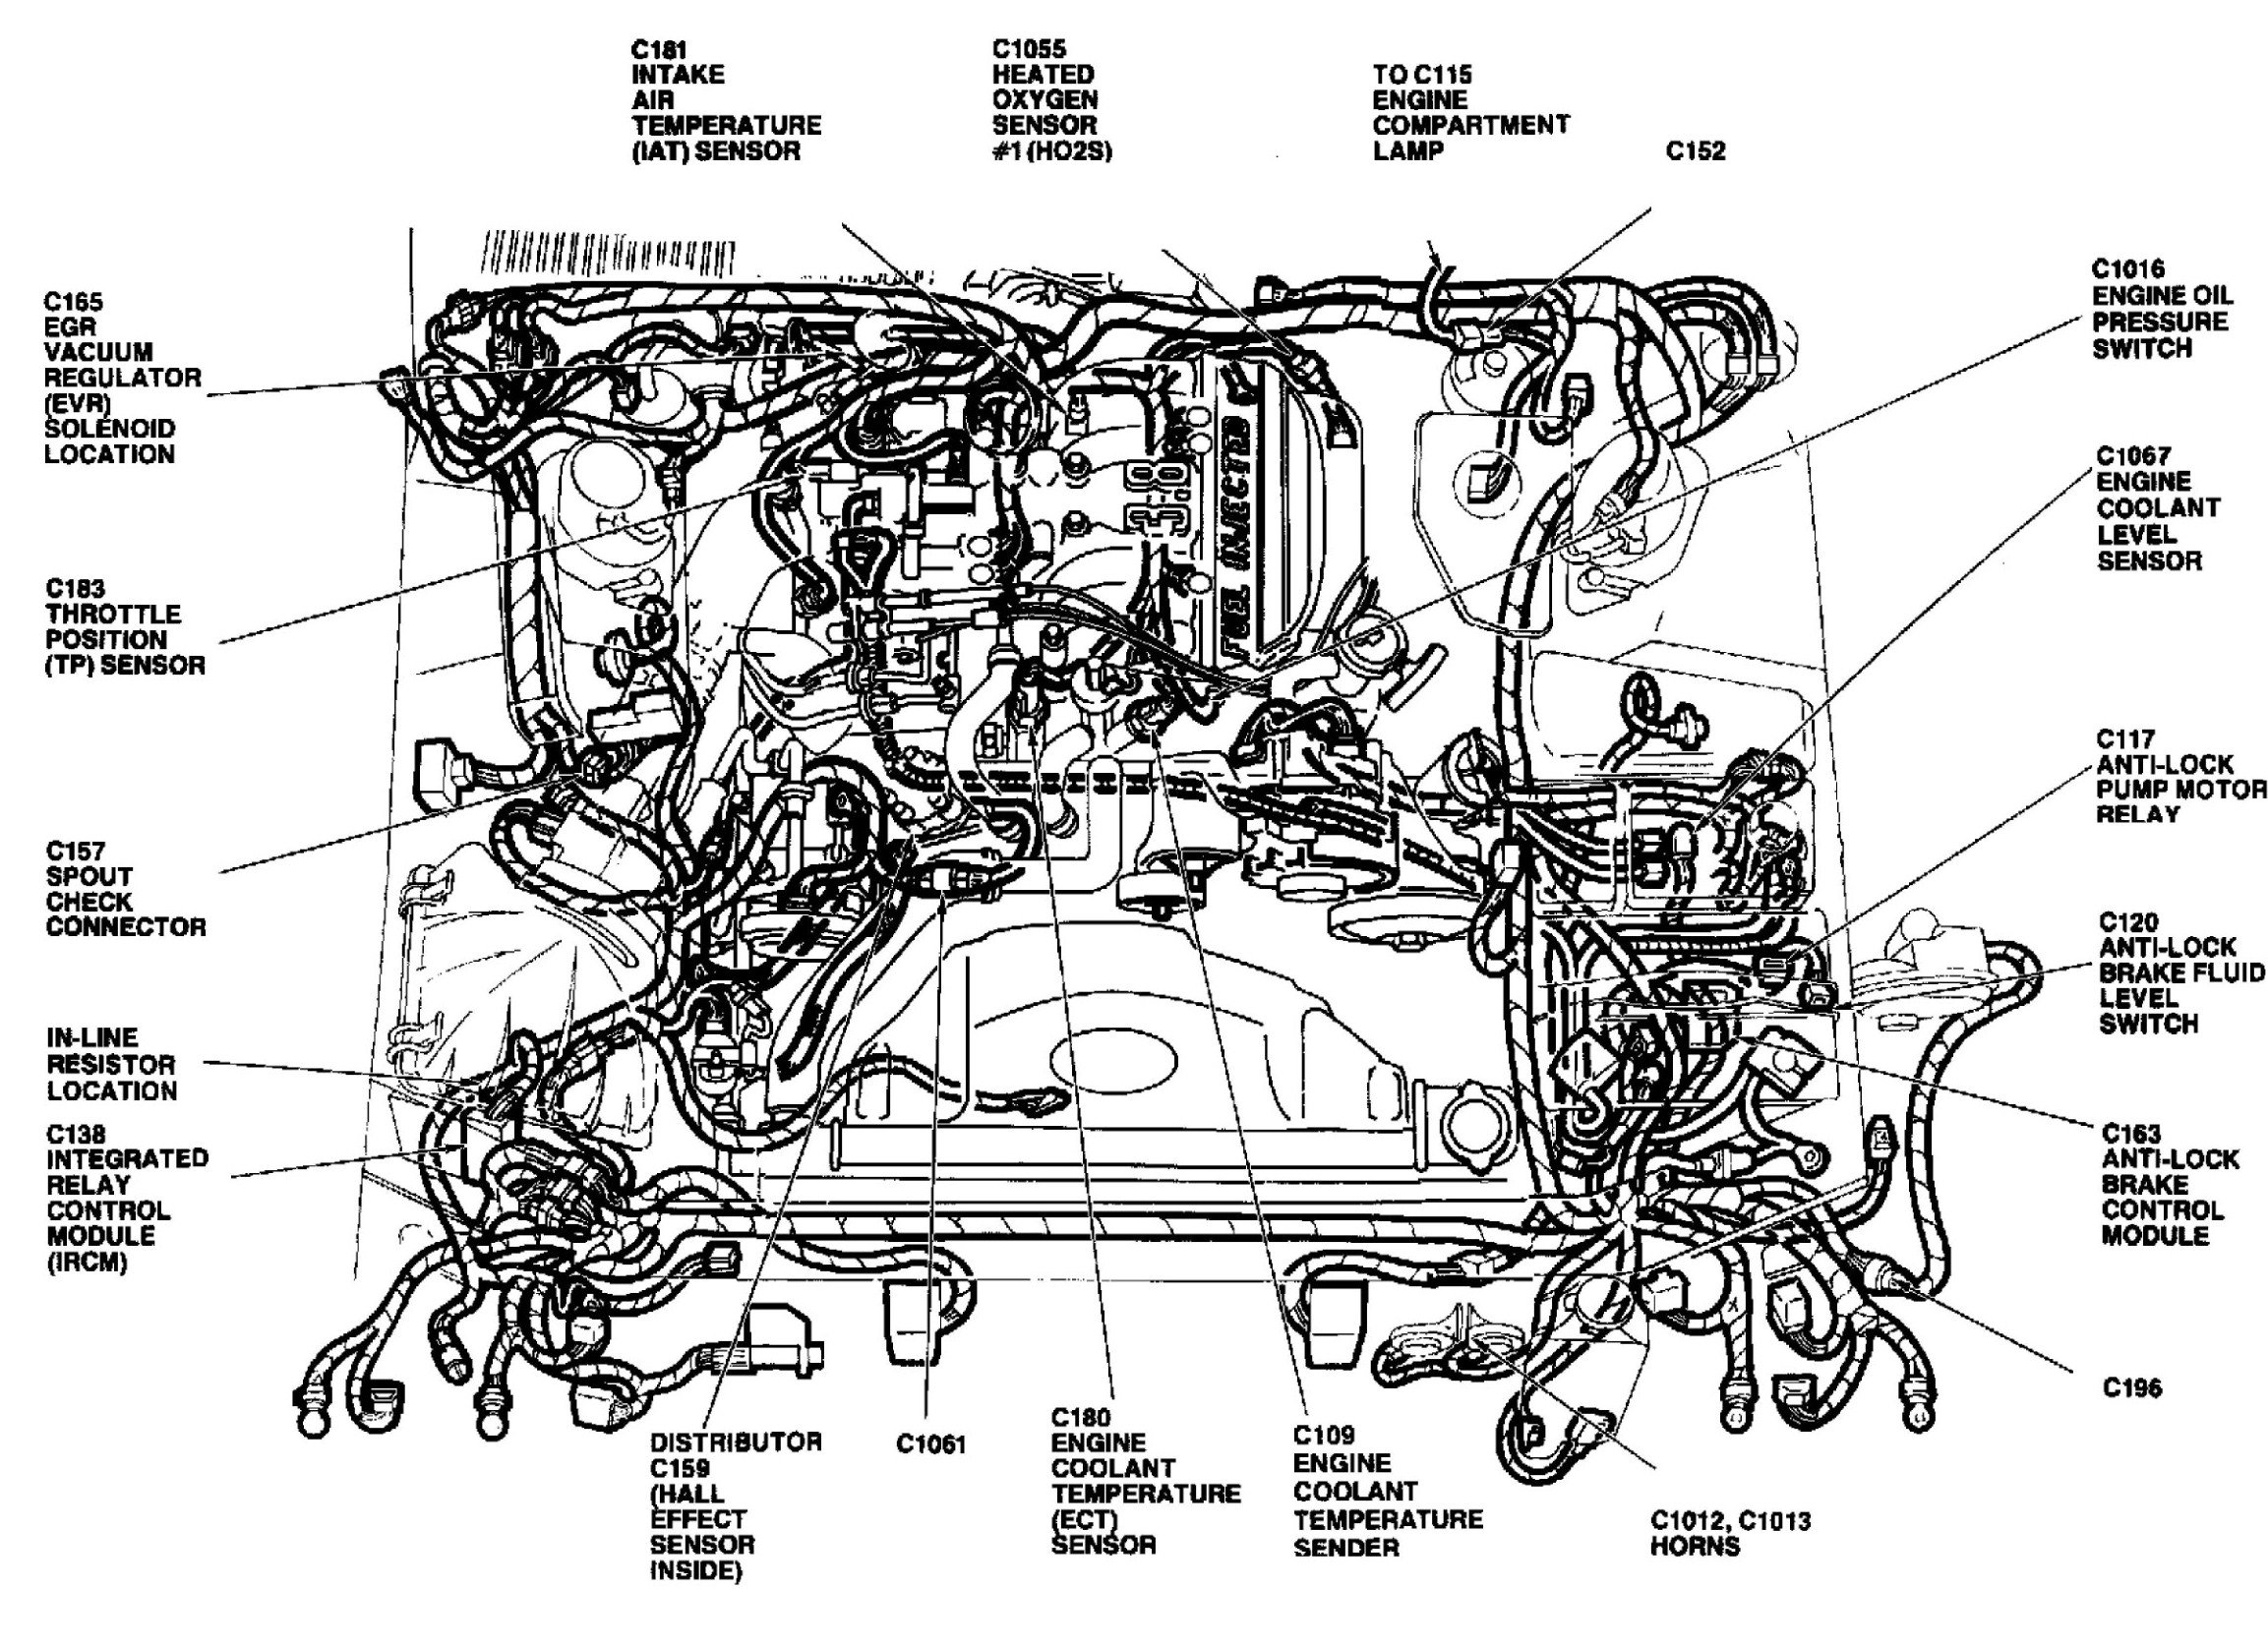 1991 mercury grand marquis parts diagram html